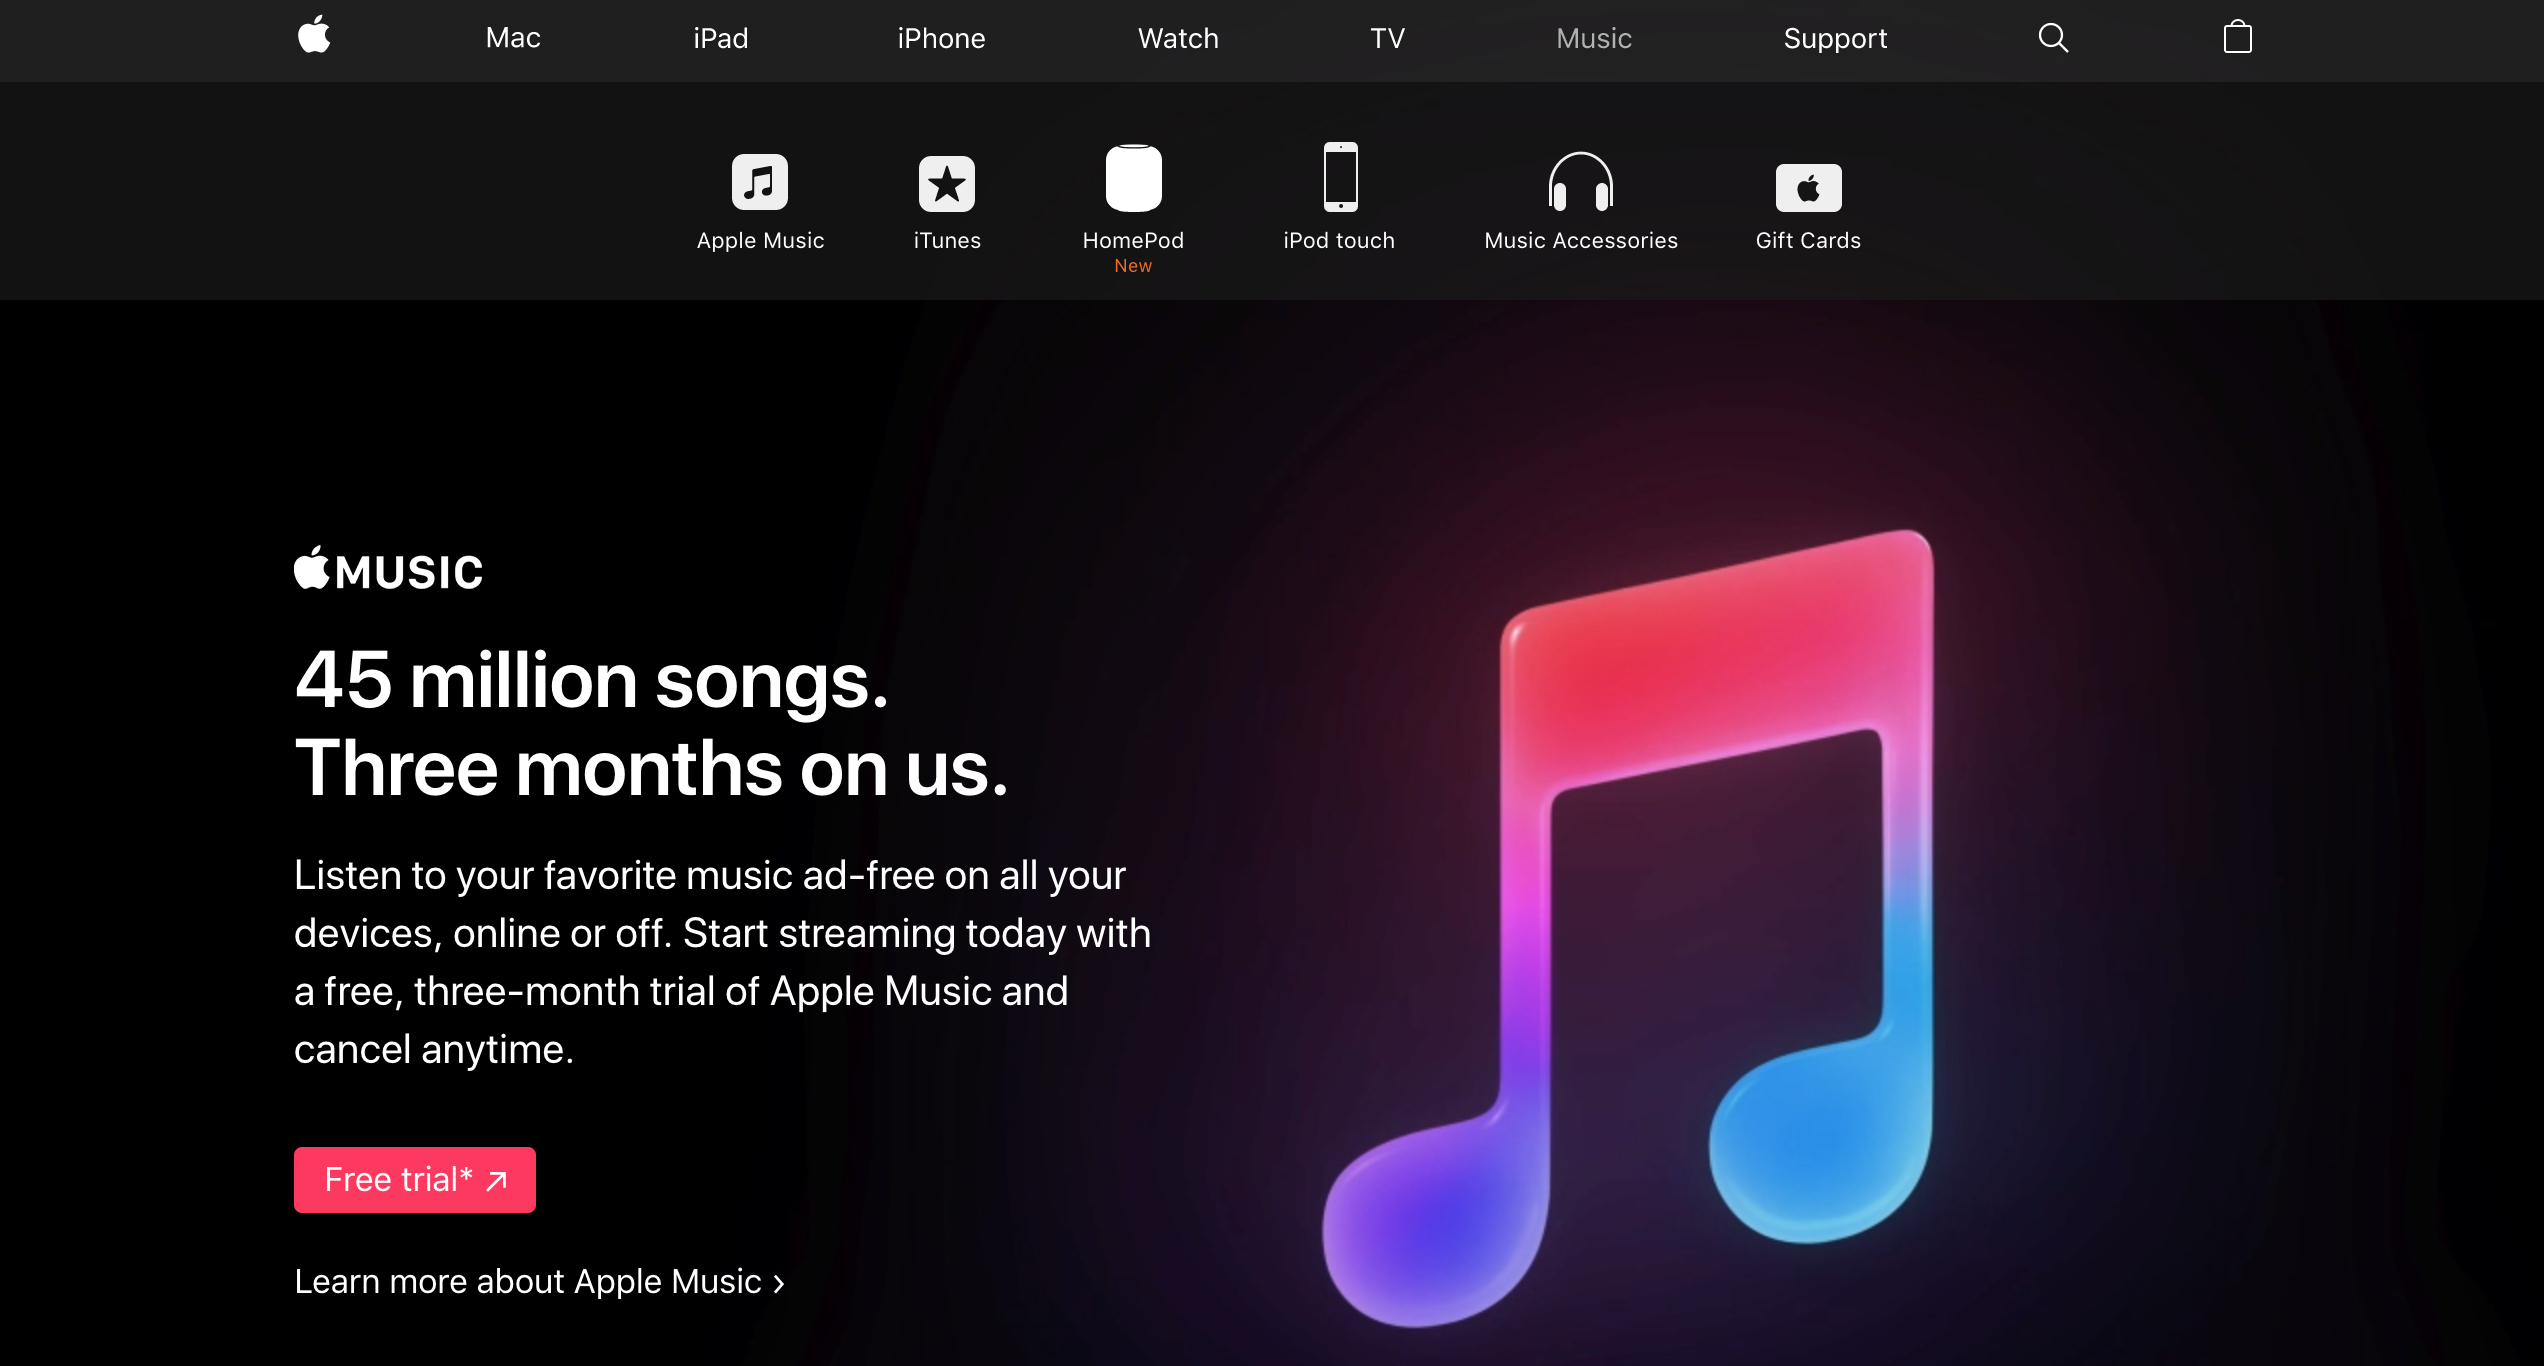 apple music saas marketing